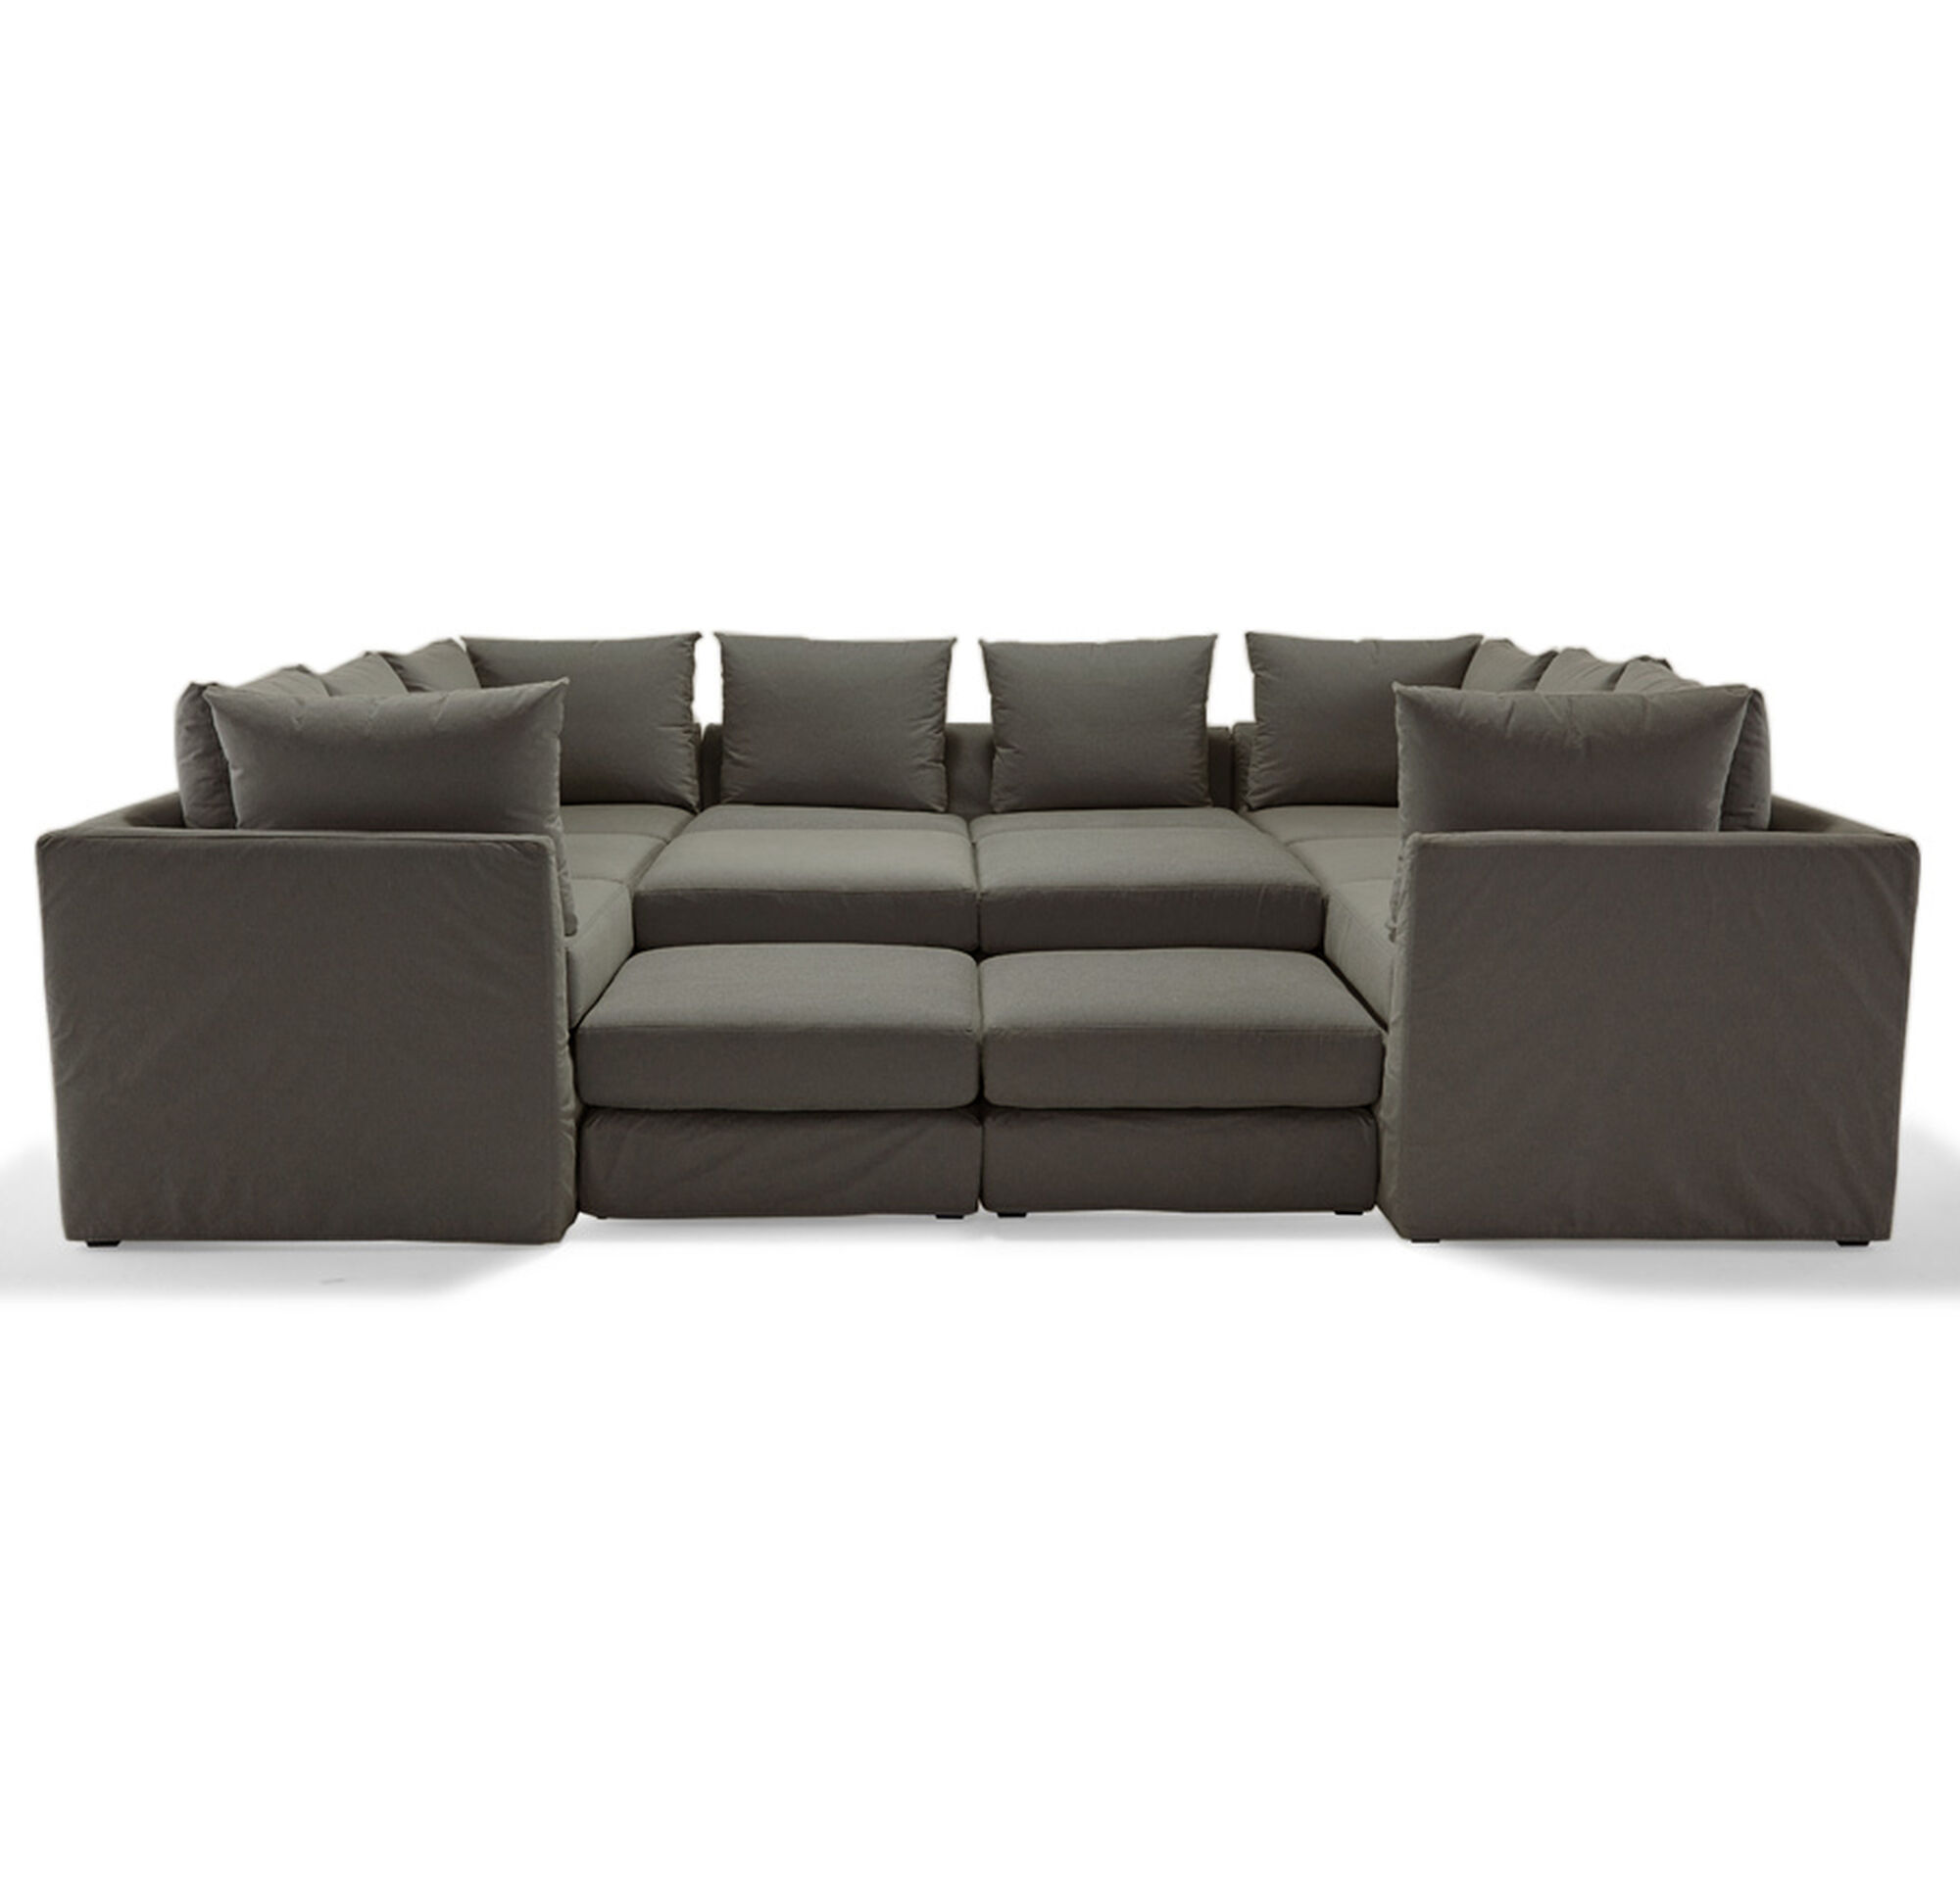 DR PITT 7 PC SECTIONAL SOFA